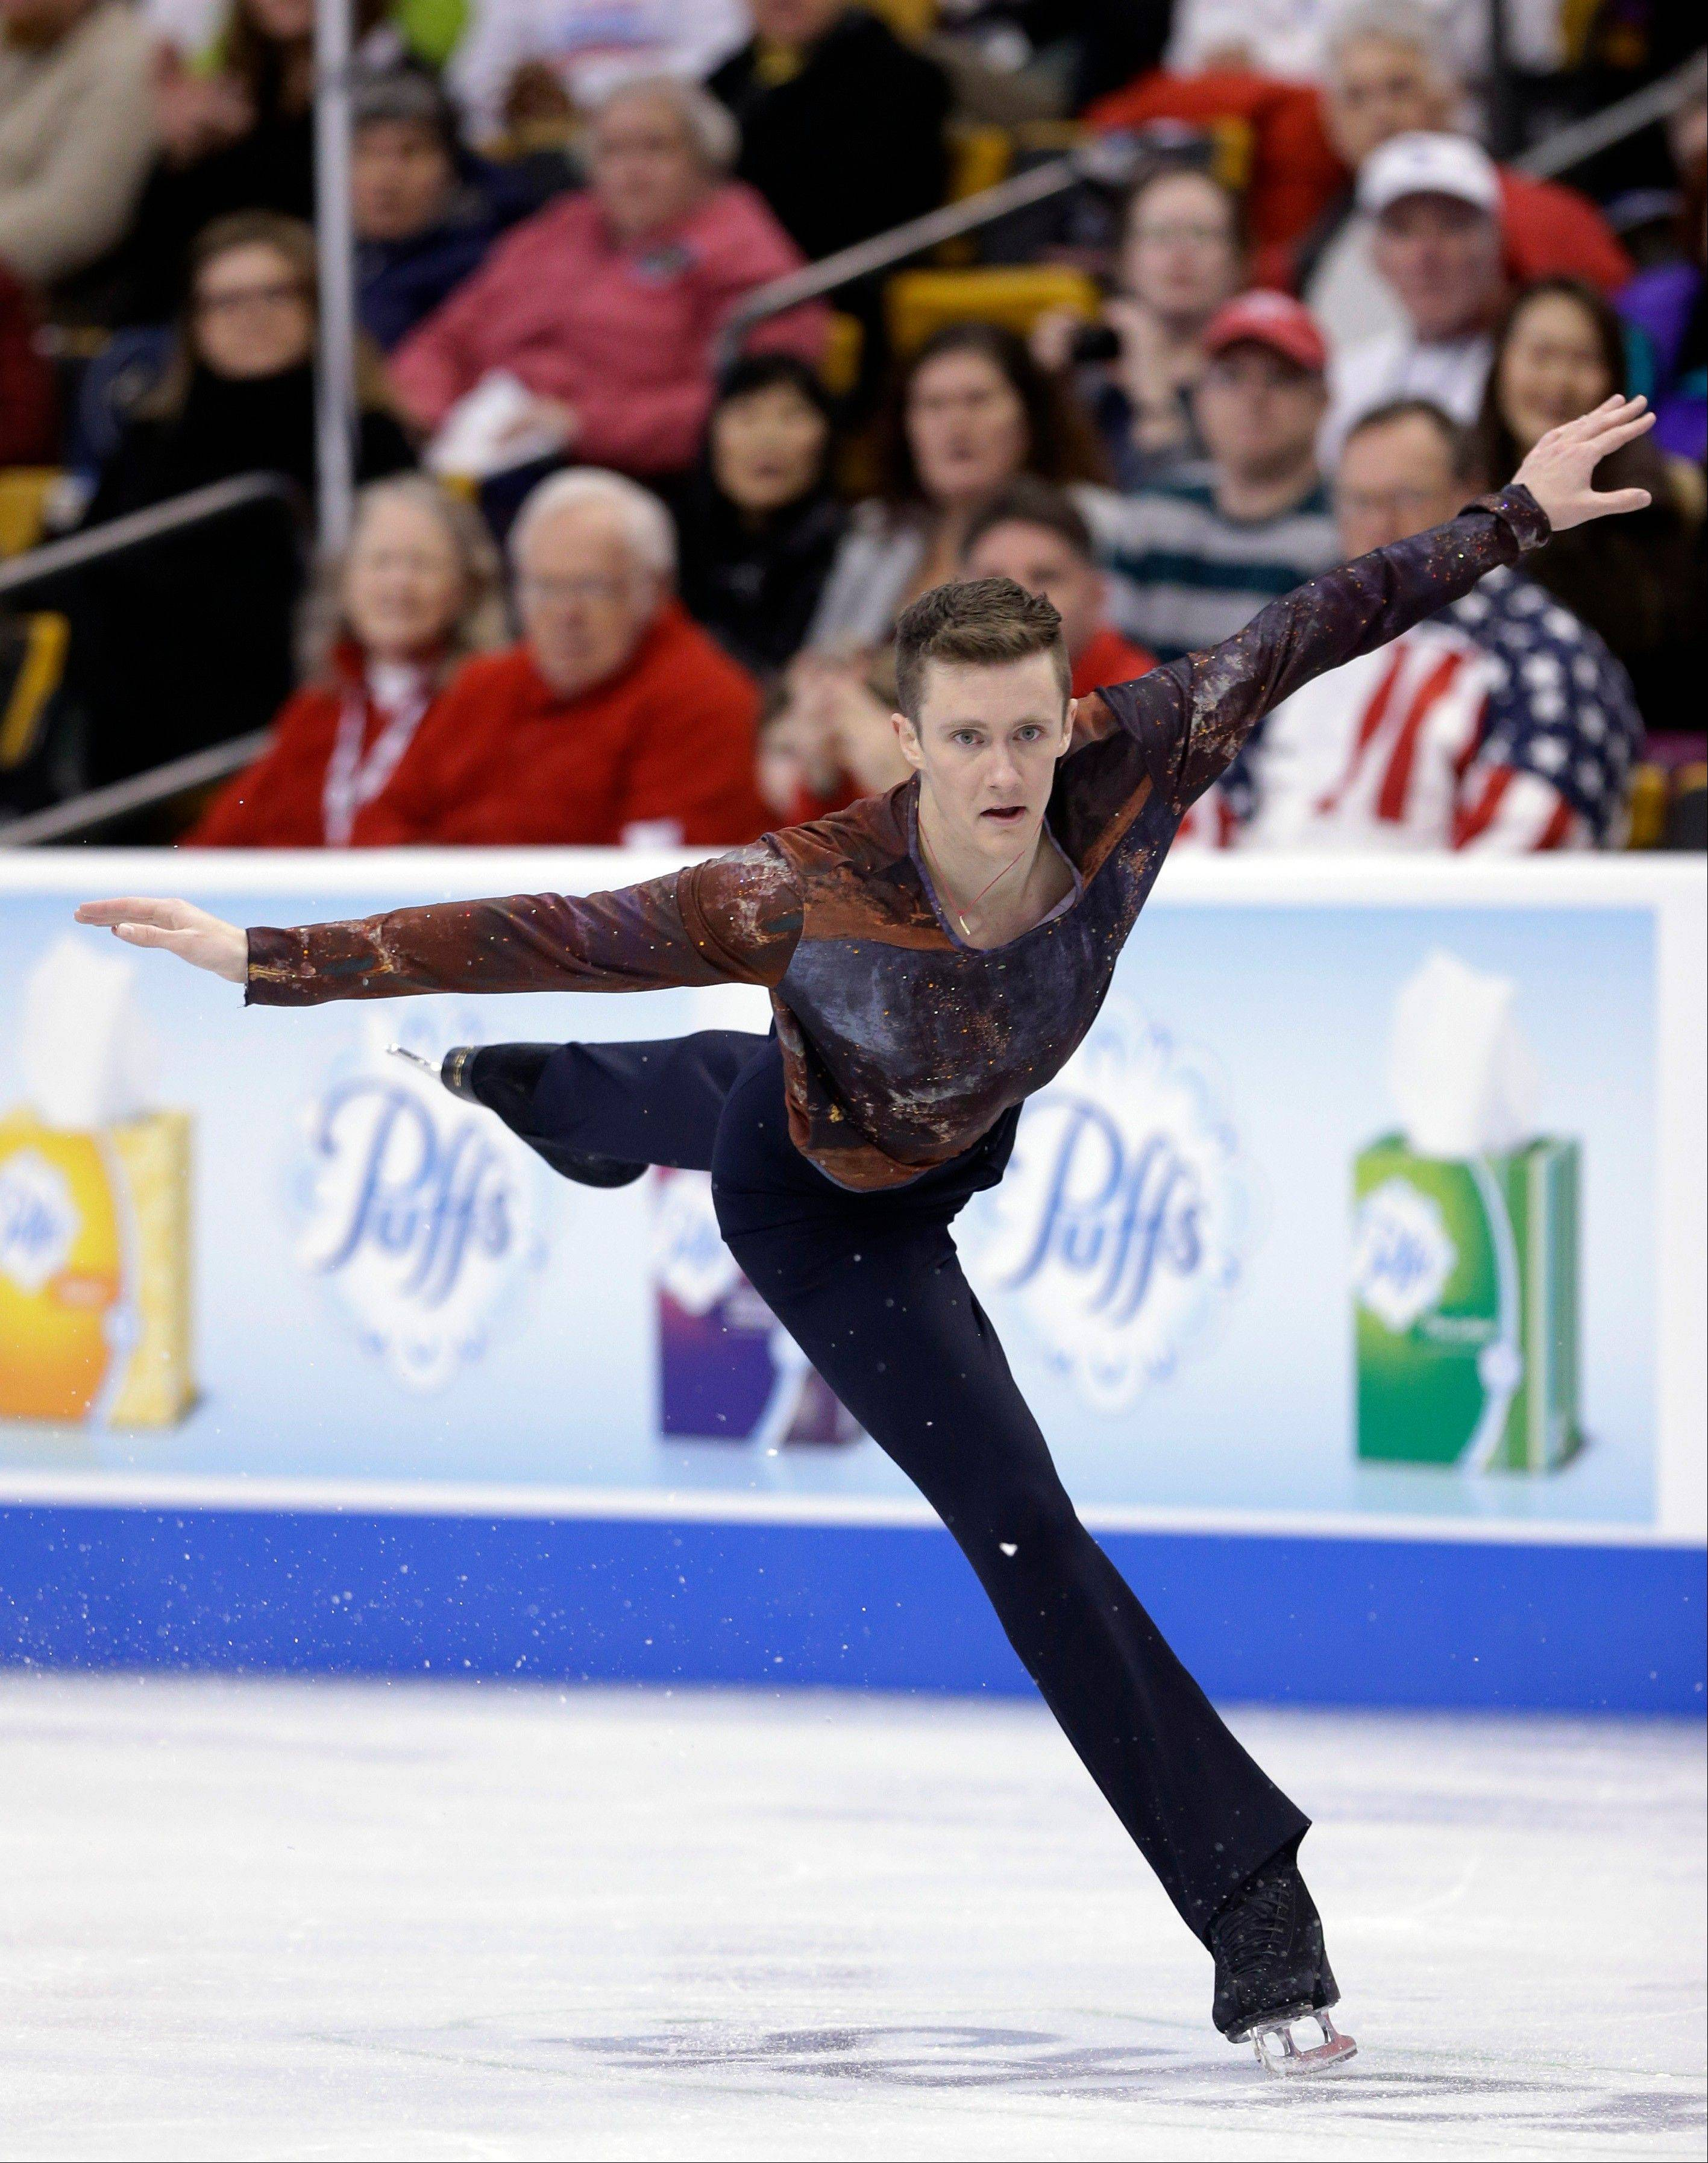 Jeremy Abbott competes during the men's free skate Sunday en route to winning his fourth national title.